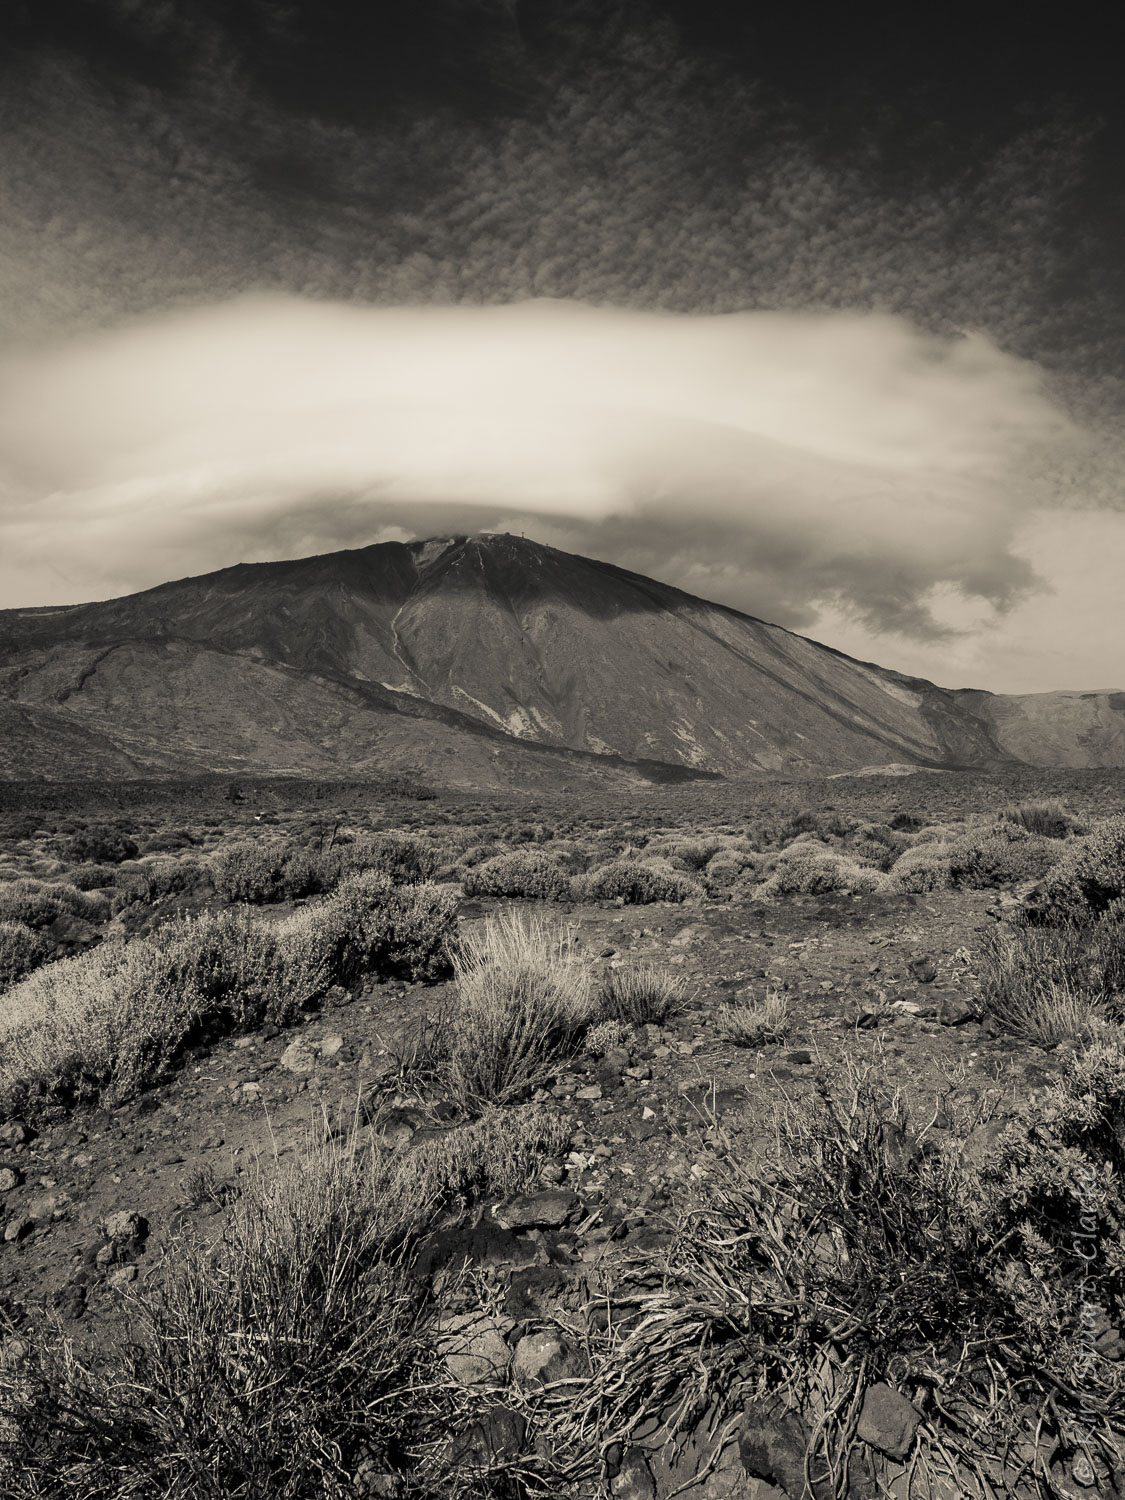 Turbulent cloud formations hover and swirl above Mount Teide.